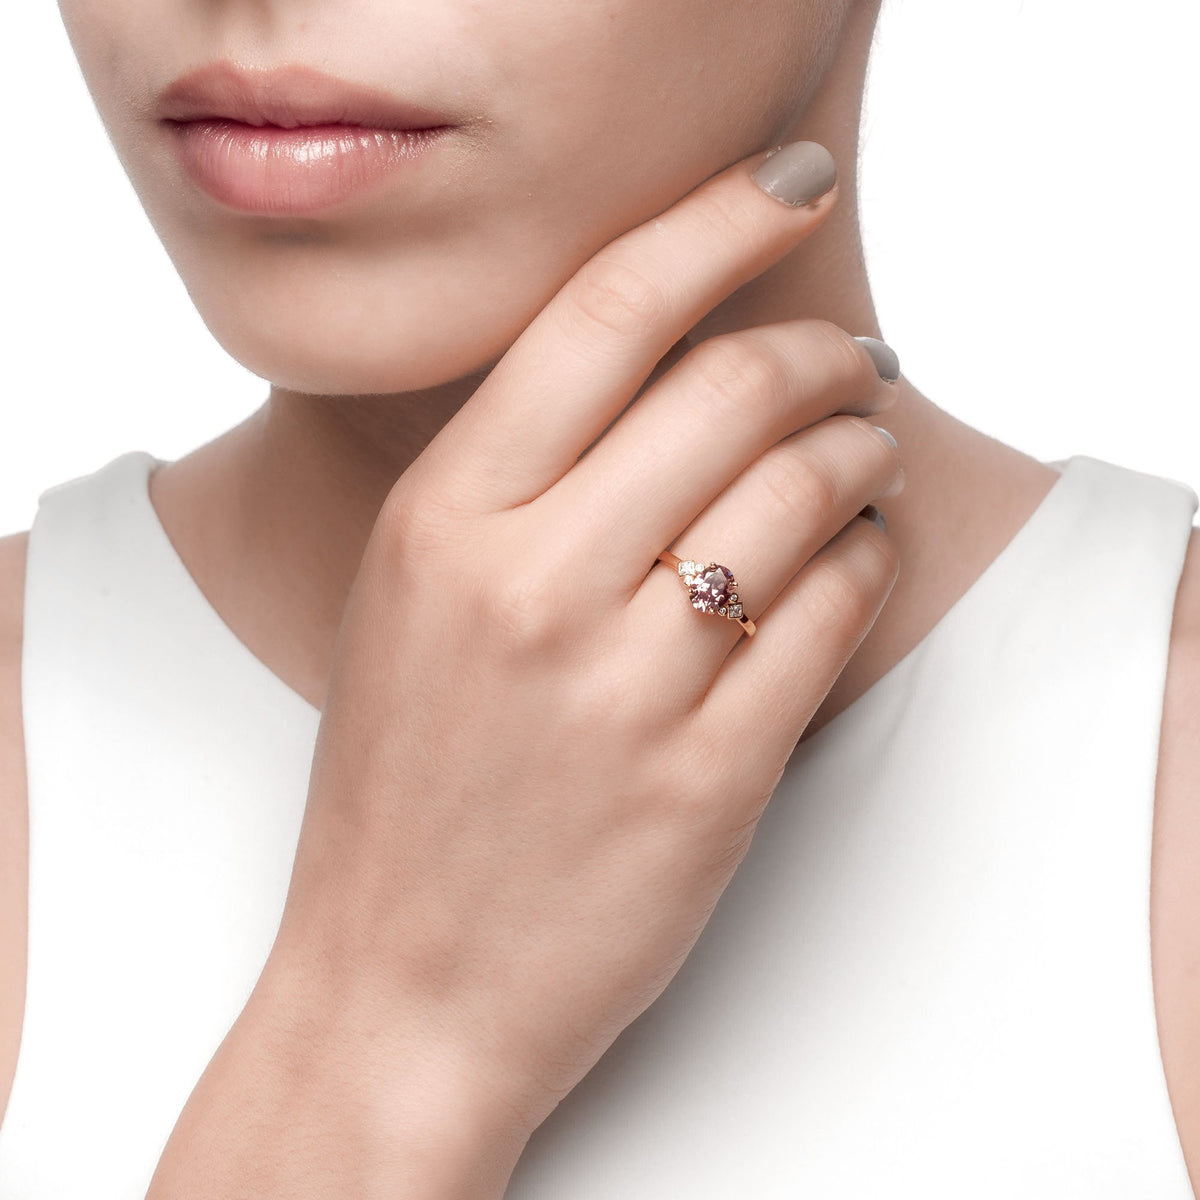 Ferentina | Gelato Ring | 925 Silver | White & Smokey CZ | 18K Gold Plated